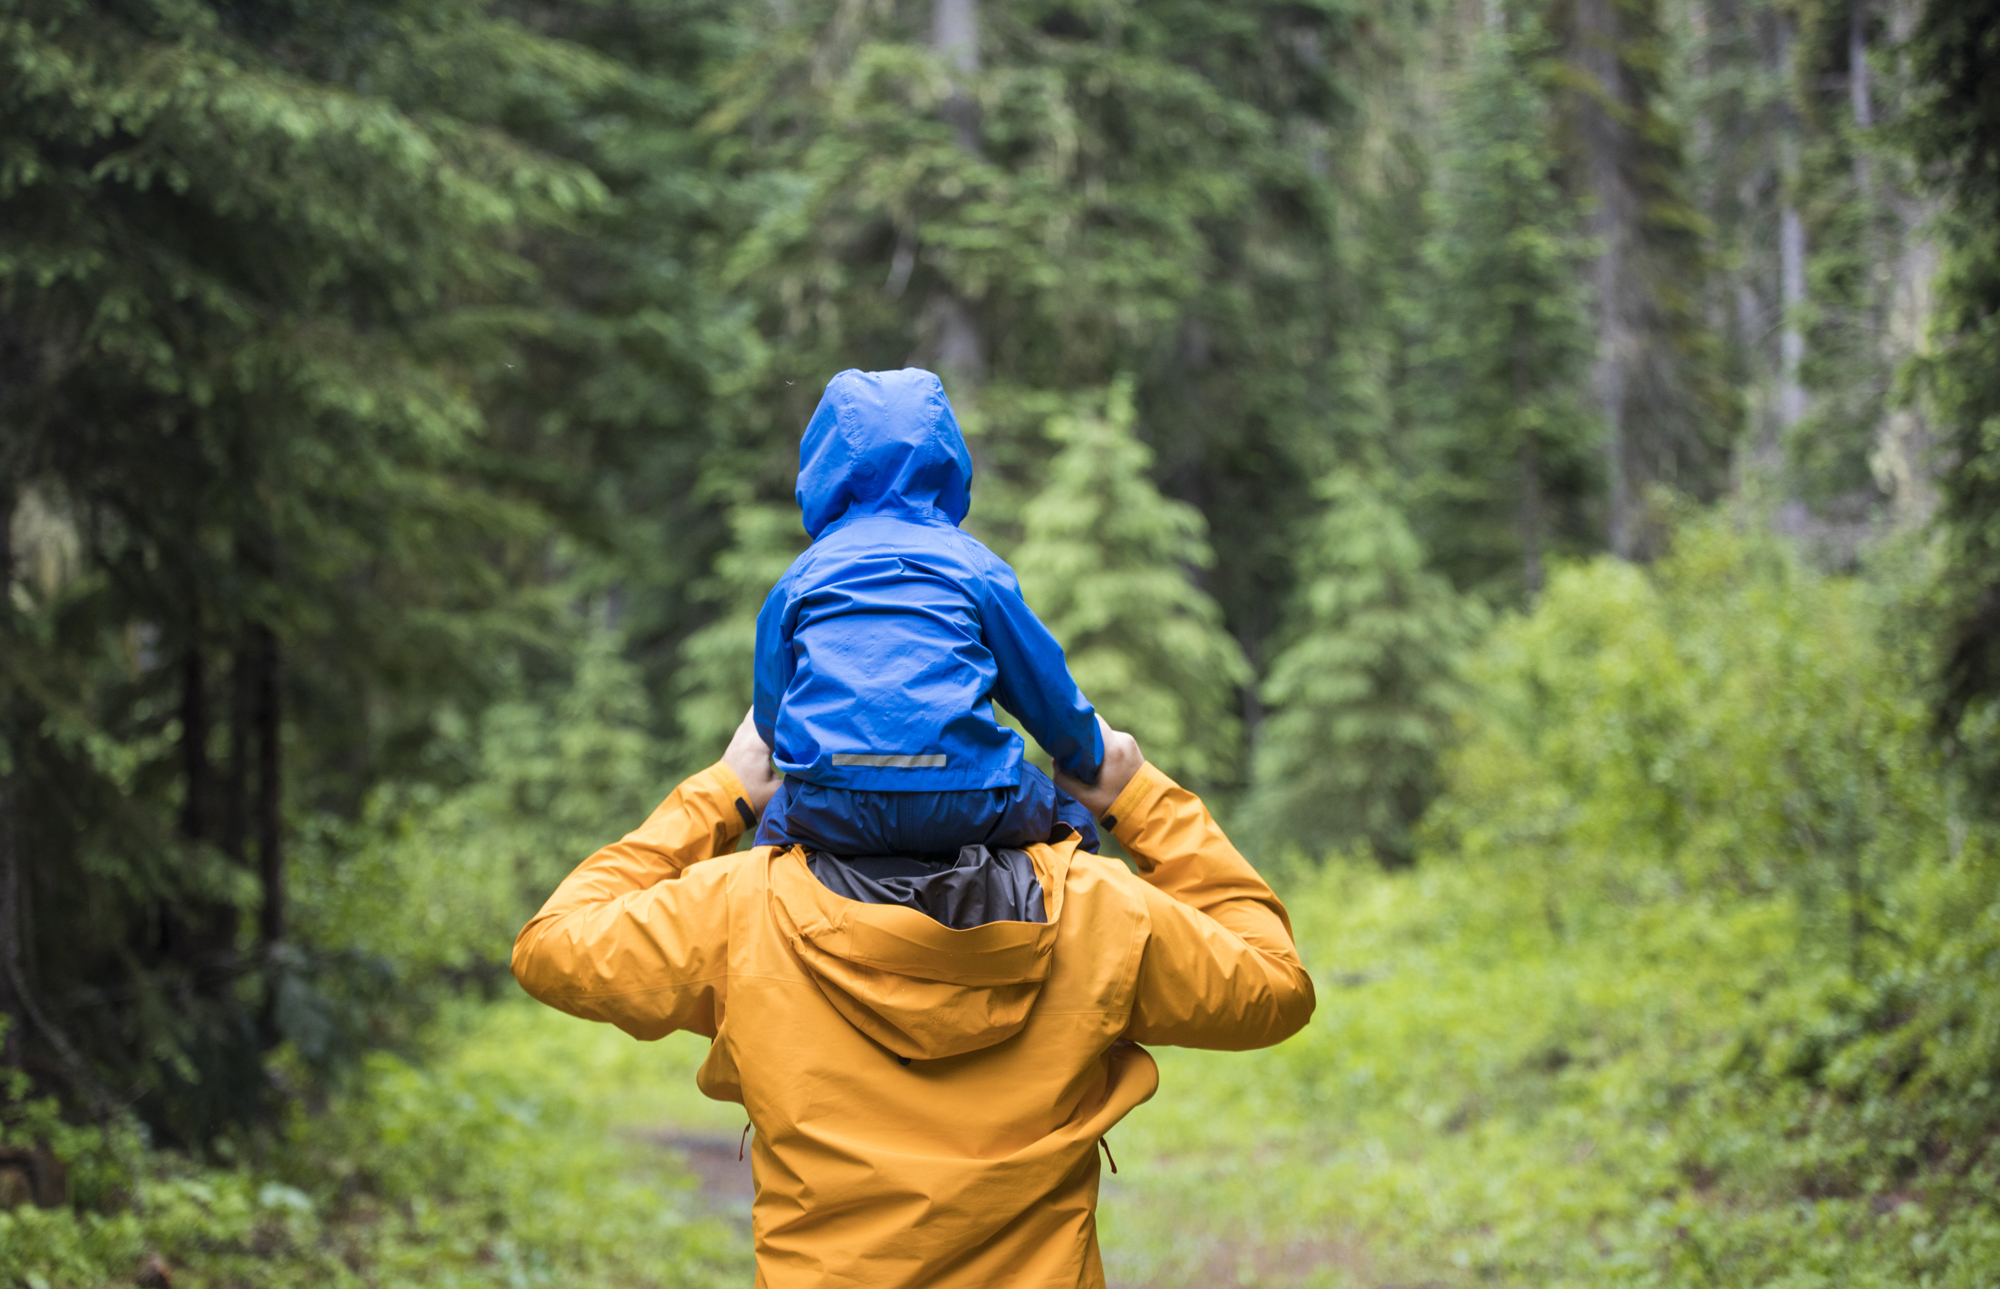 Father carrying son on shoulders during a hike